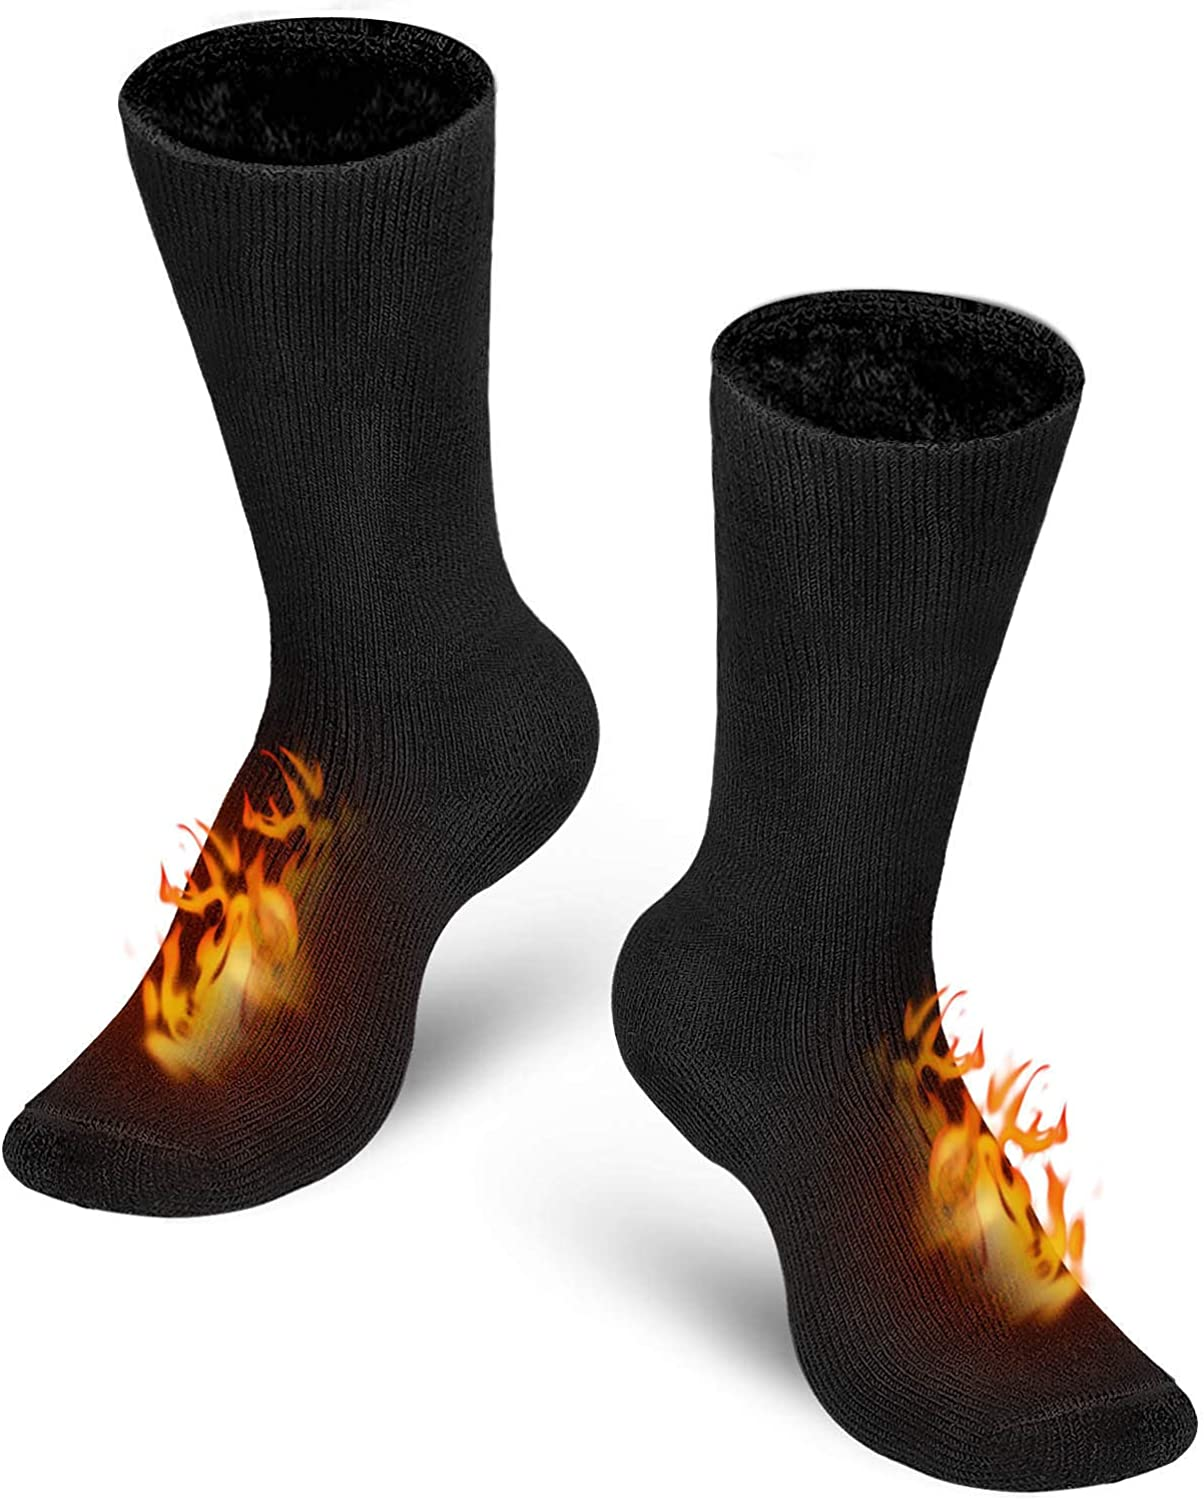 Bymore Heated Socks for Women, Thermal Socks for Men, Warm Thick Winter Socks Insulated Cold Weather-2Pack